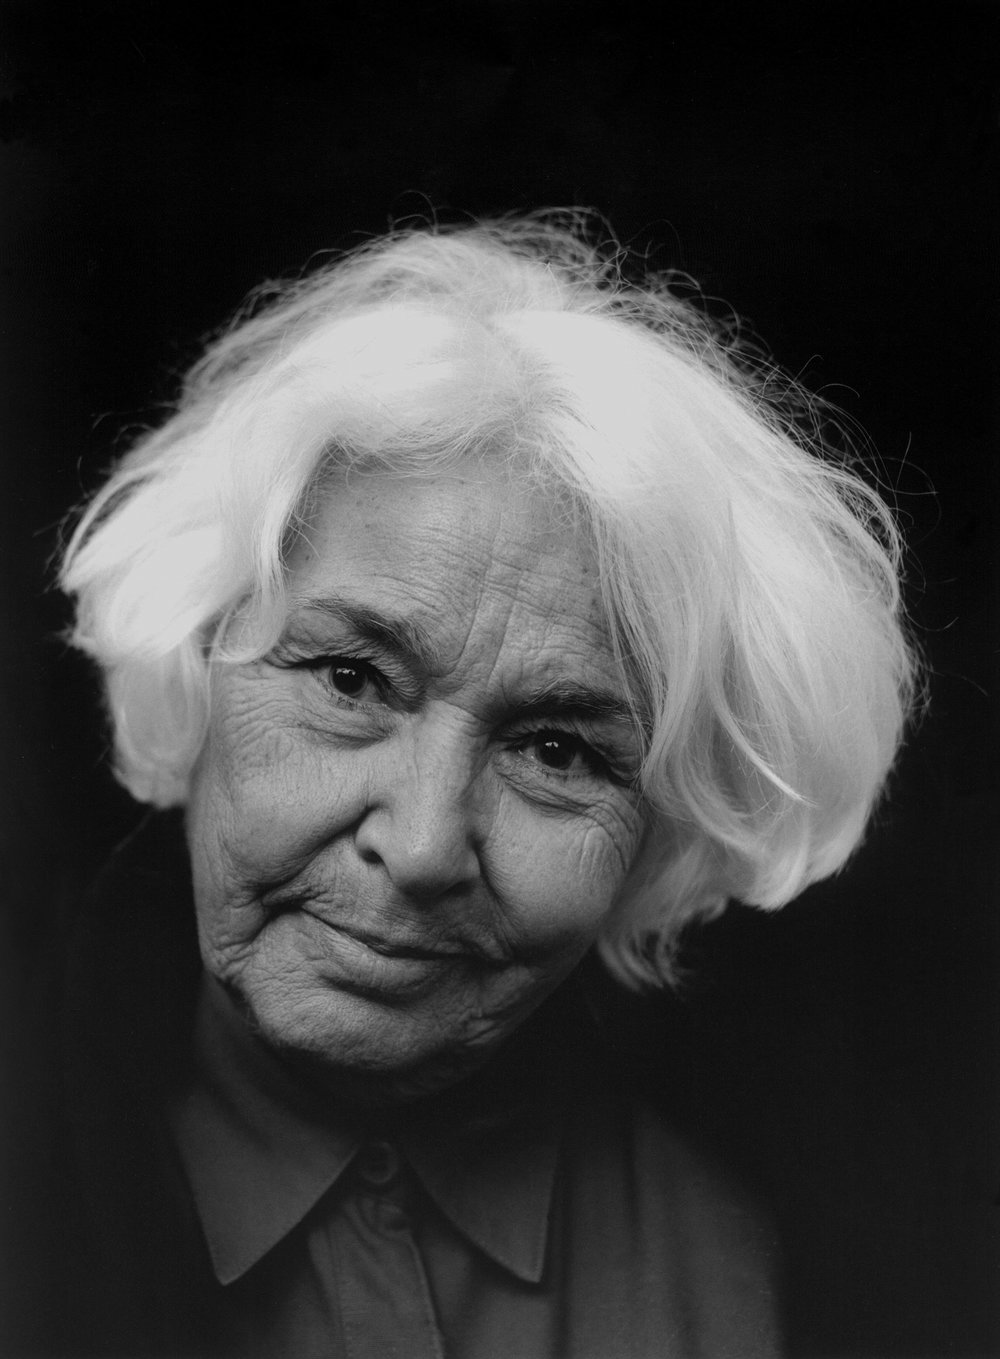 Nawal El Saadawi - Women's rights activist, founder and president of the Arab Women's Solidarity Association, co-founder of the Arab Association for Human Rights